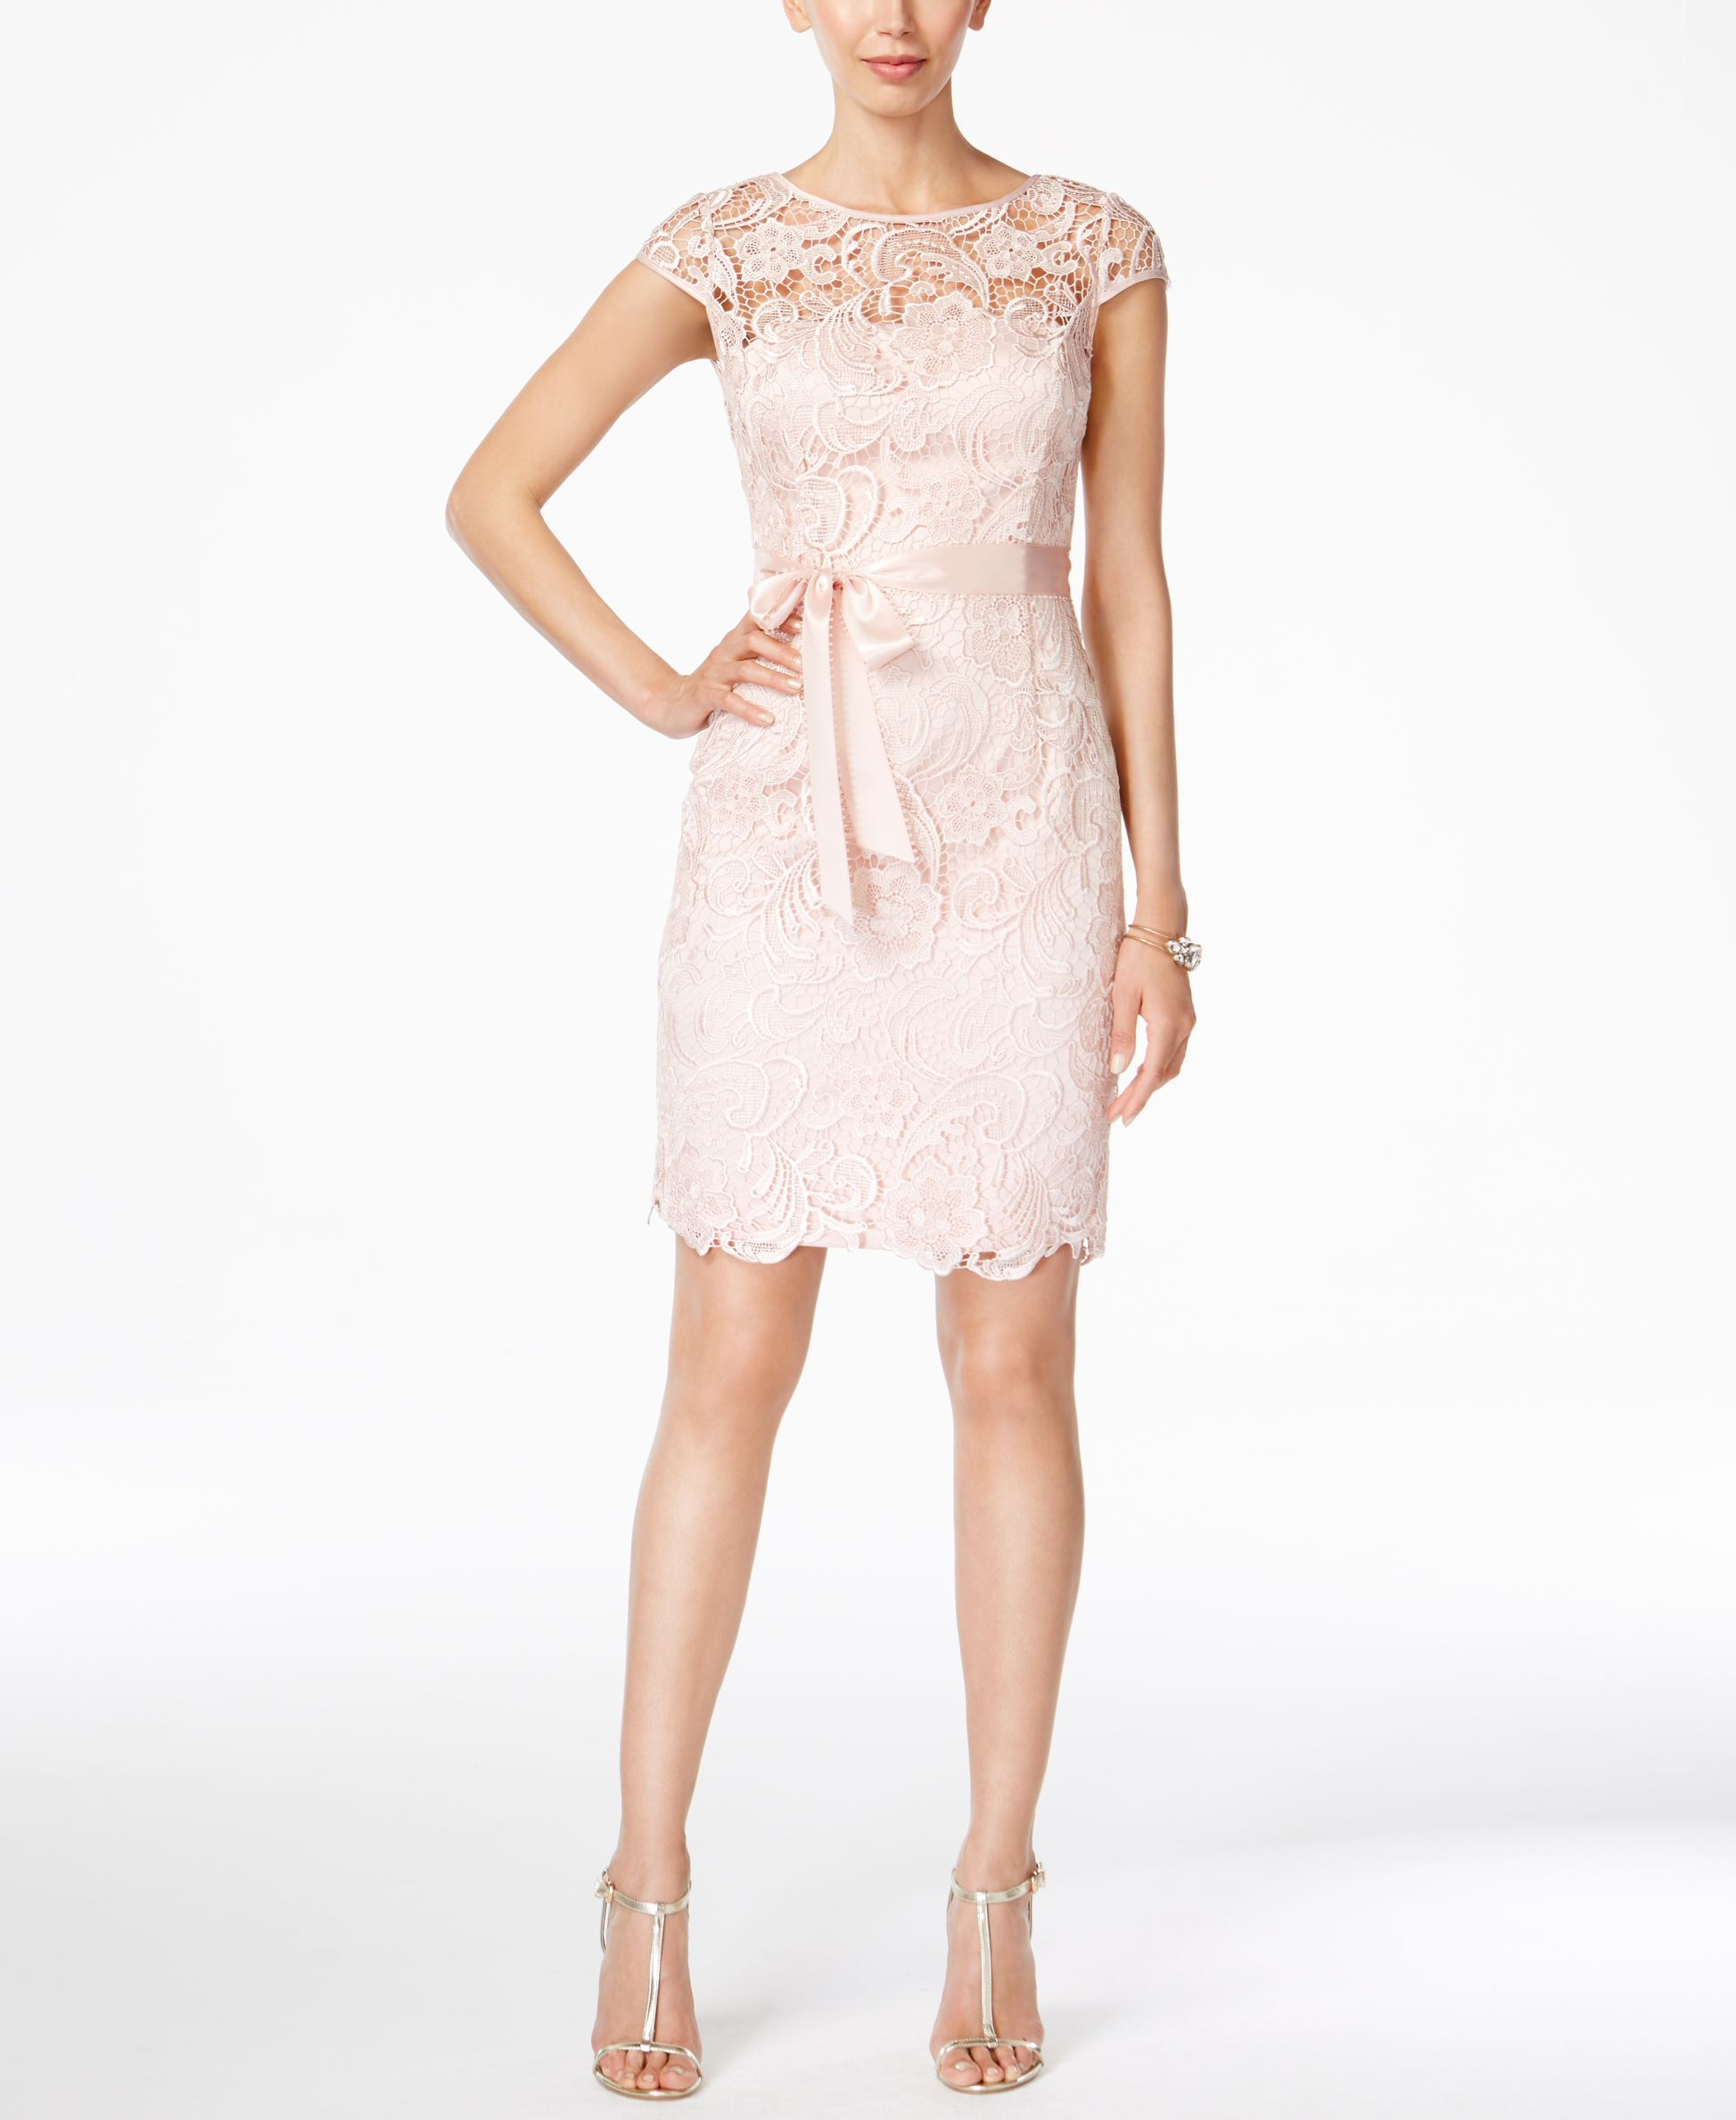 Adrianna Papell Lace Cap-Sleeve Illusion Sheath Dress | Shops ...